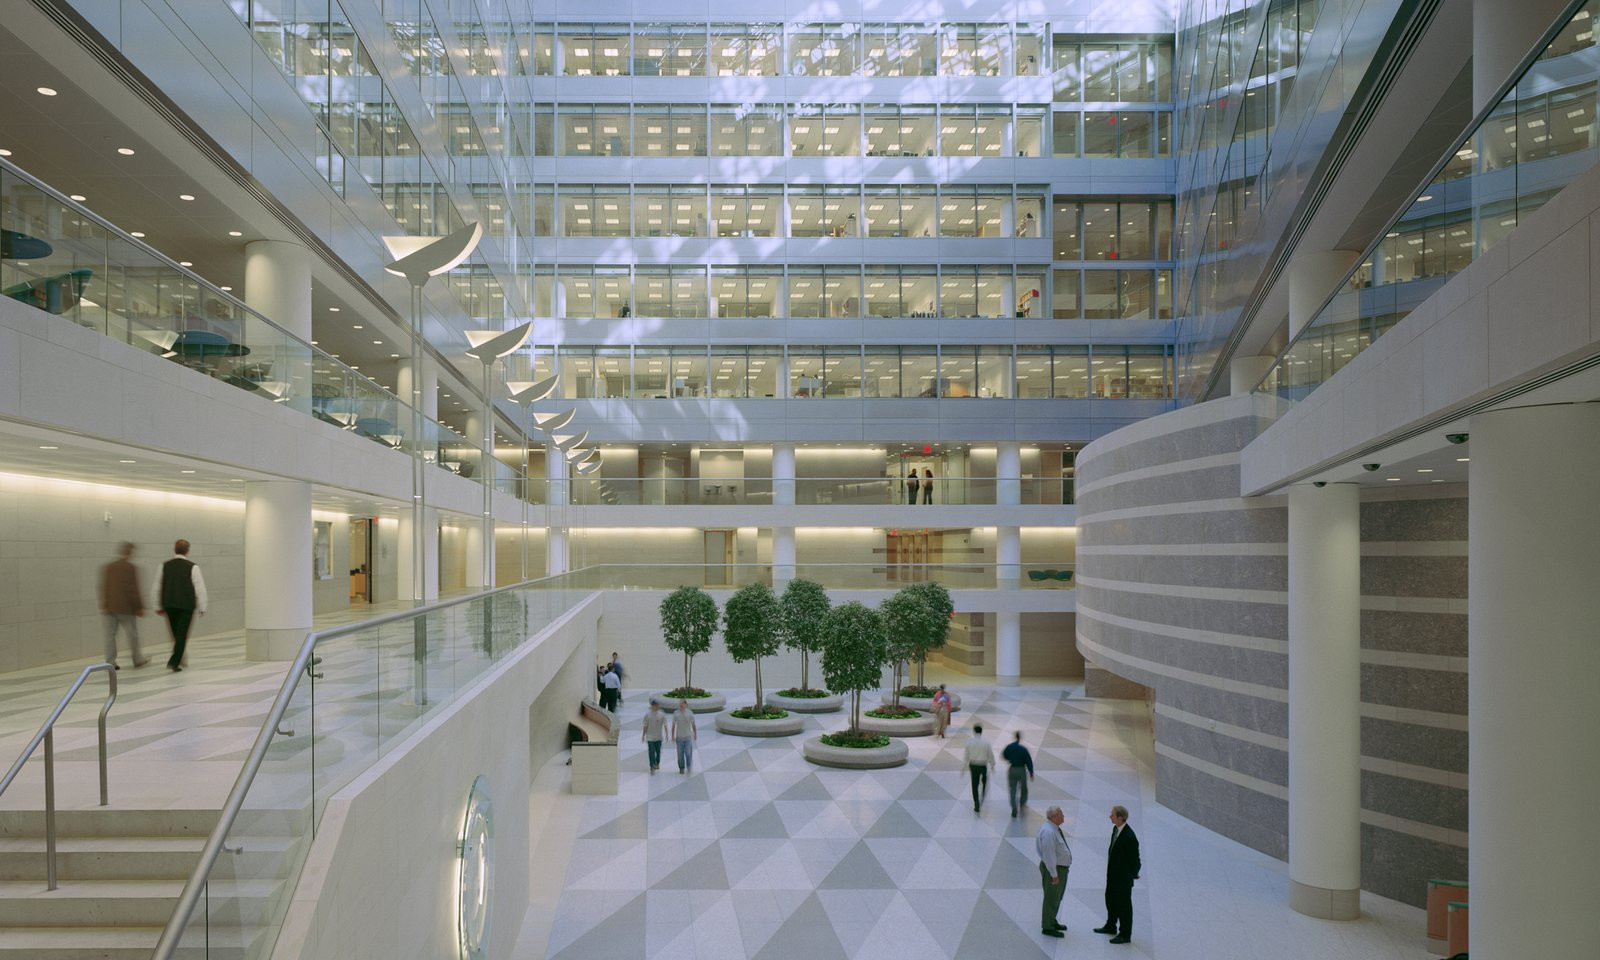 International Monetary Fund (IMF) Atrium, Headquarters - Washington, DC